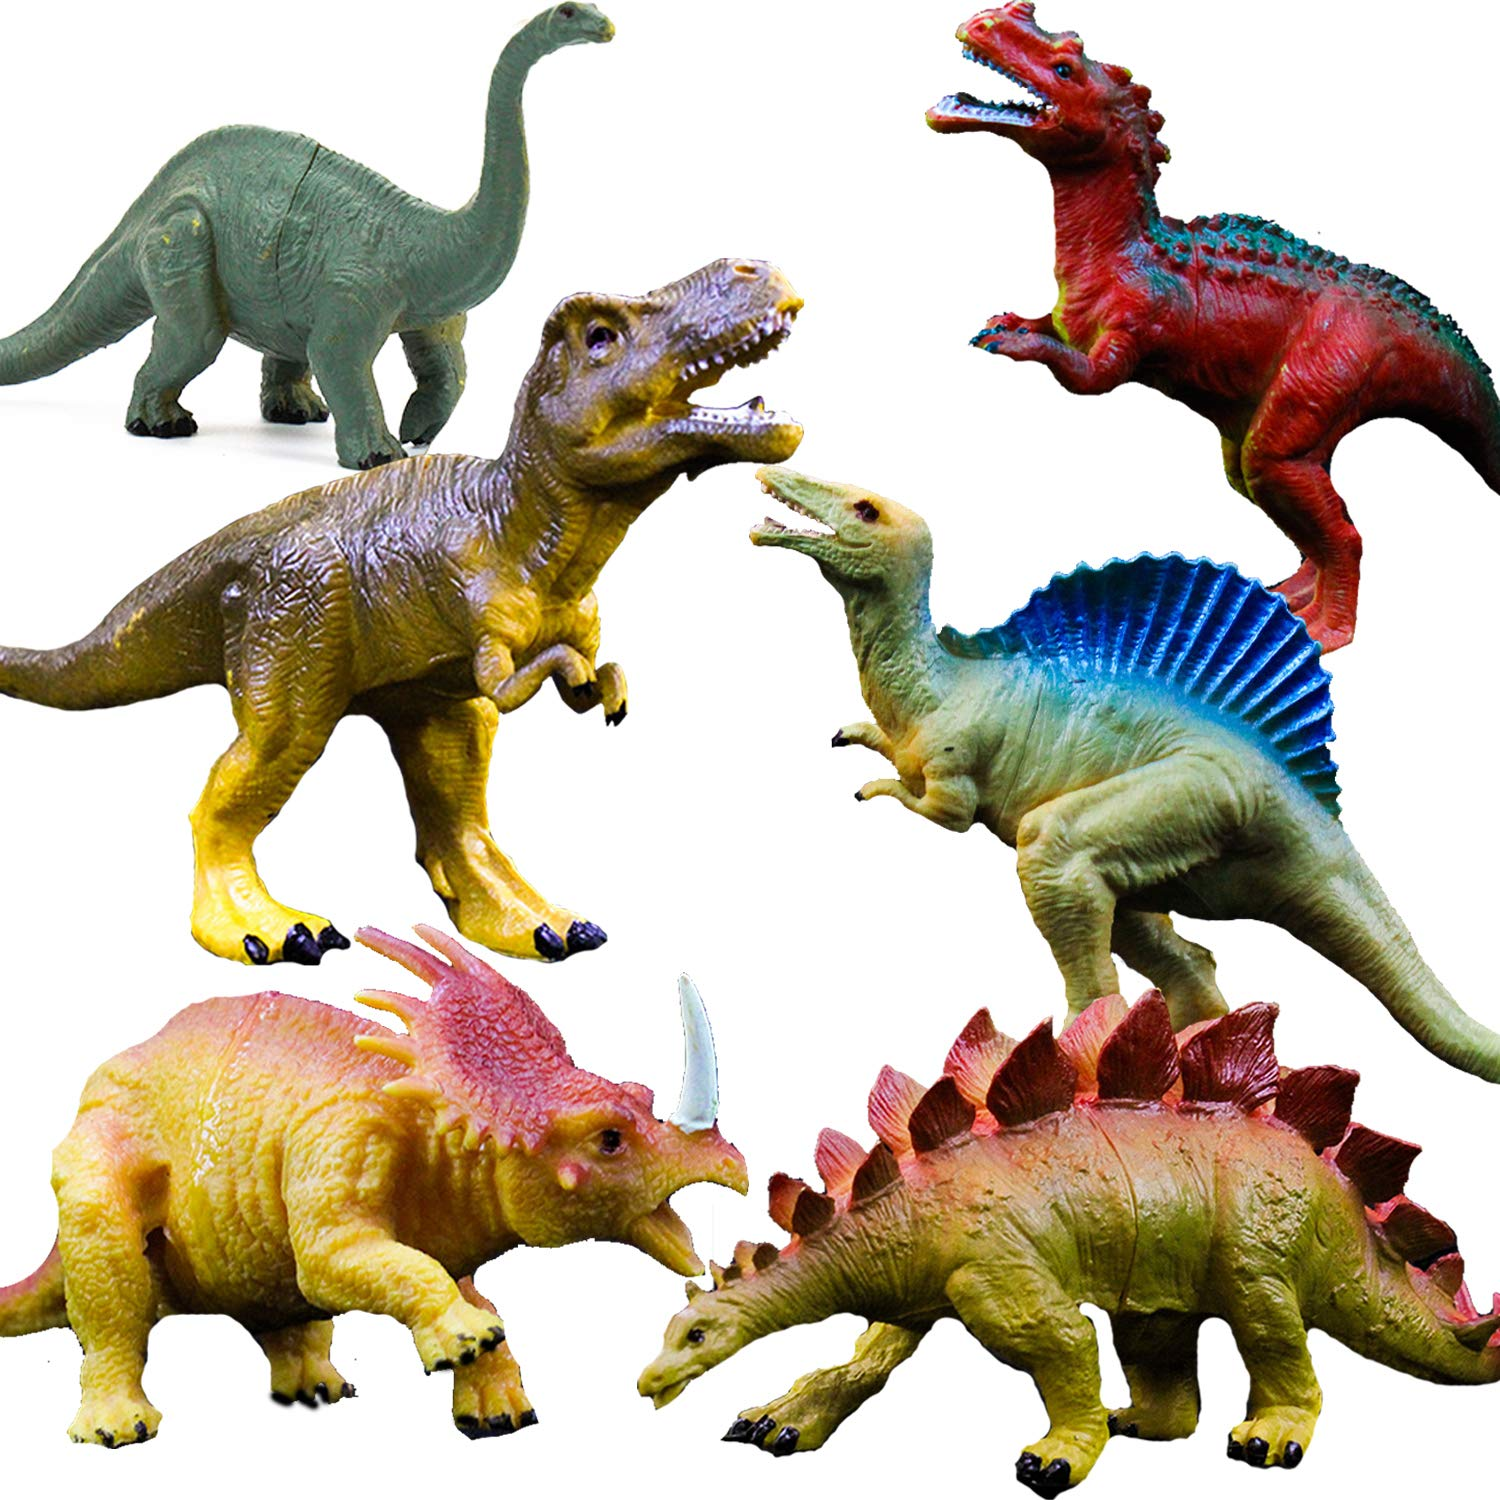 "Realistic Dinosaur Figure Toys, 6 Pack 7"" Large Size Plastic Dinosaur Set for Kids and Toddler Education, Including T-rex, Stegosaurus, Monoclonius, etc"